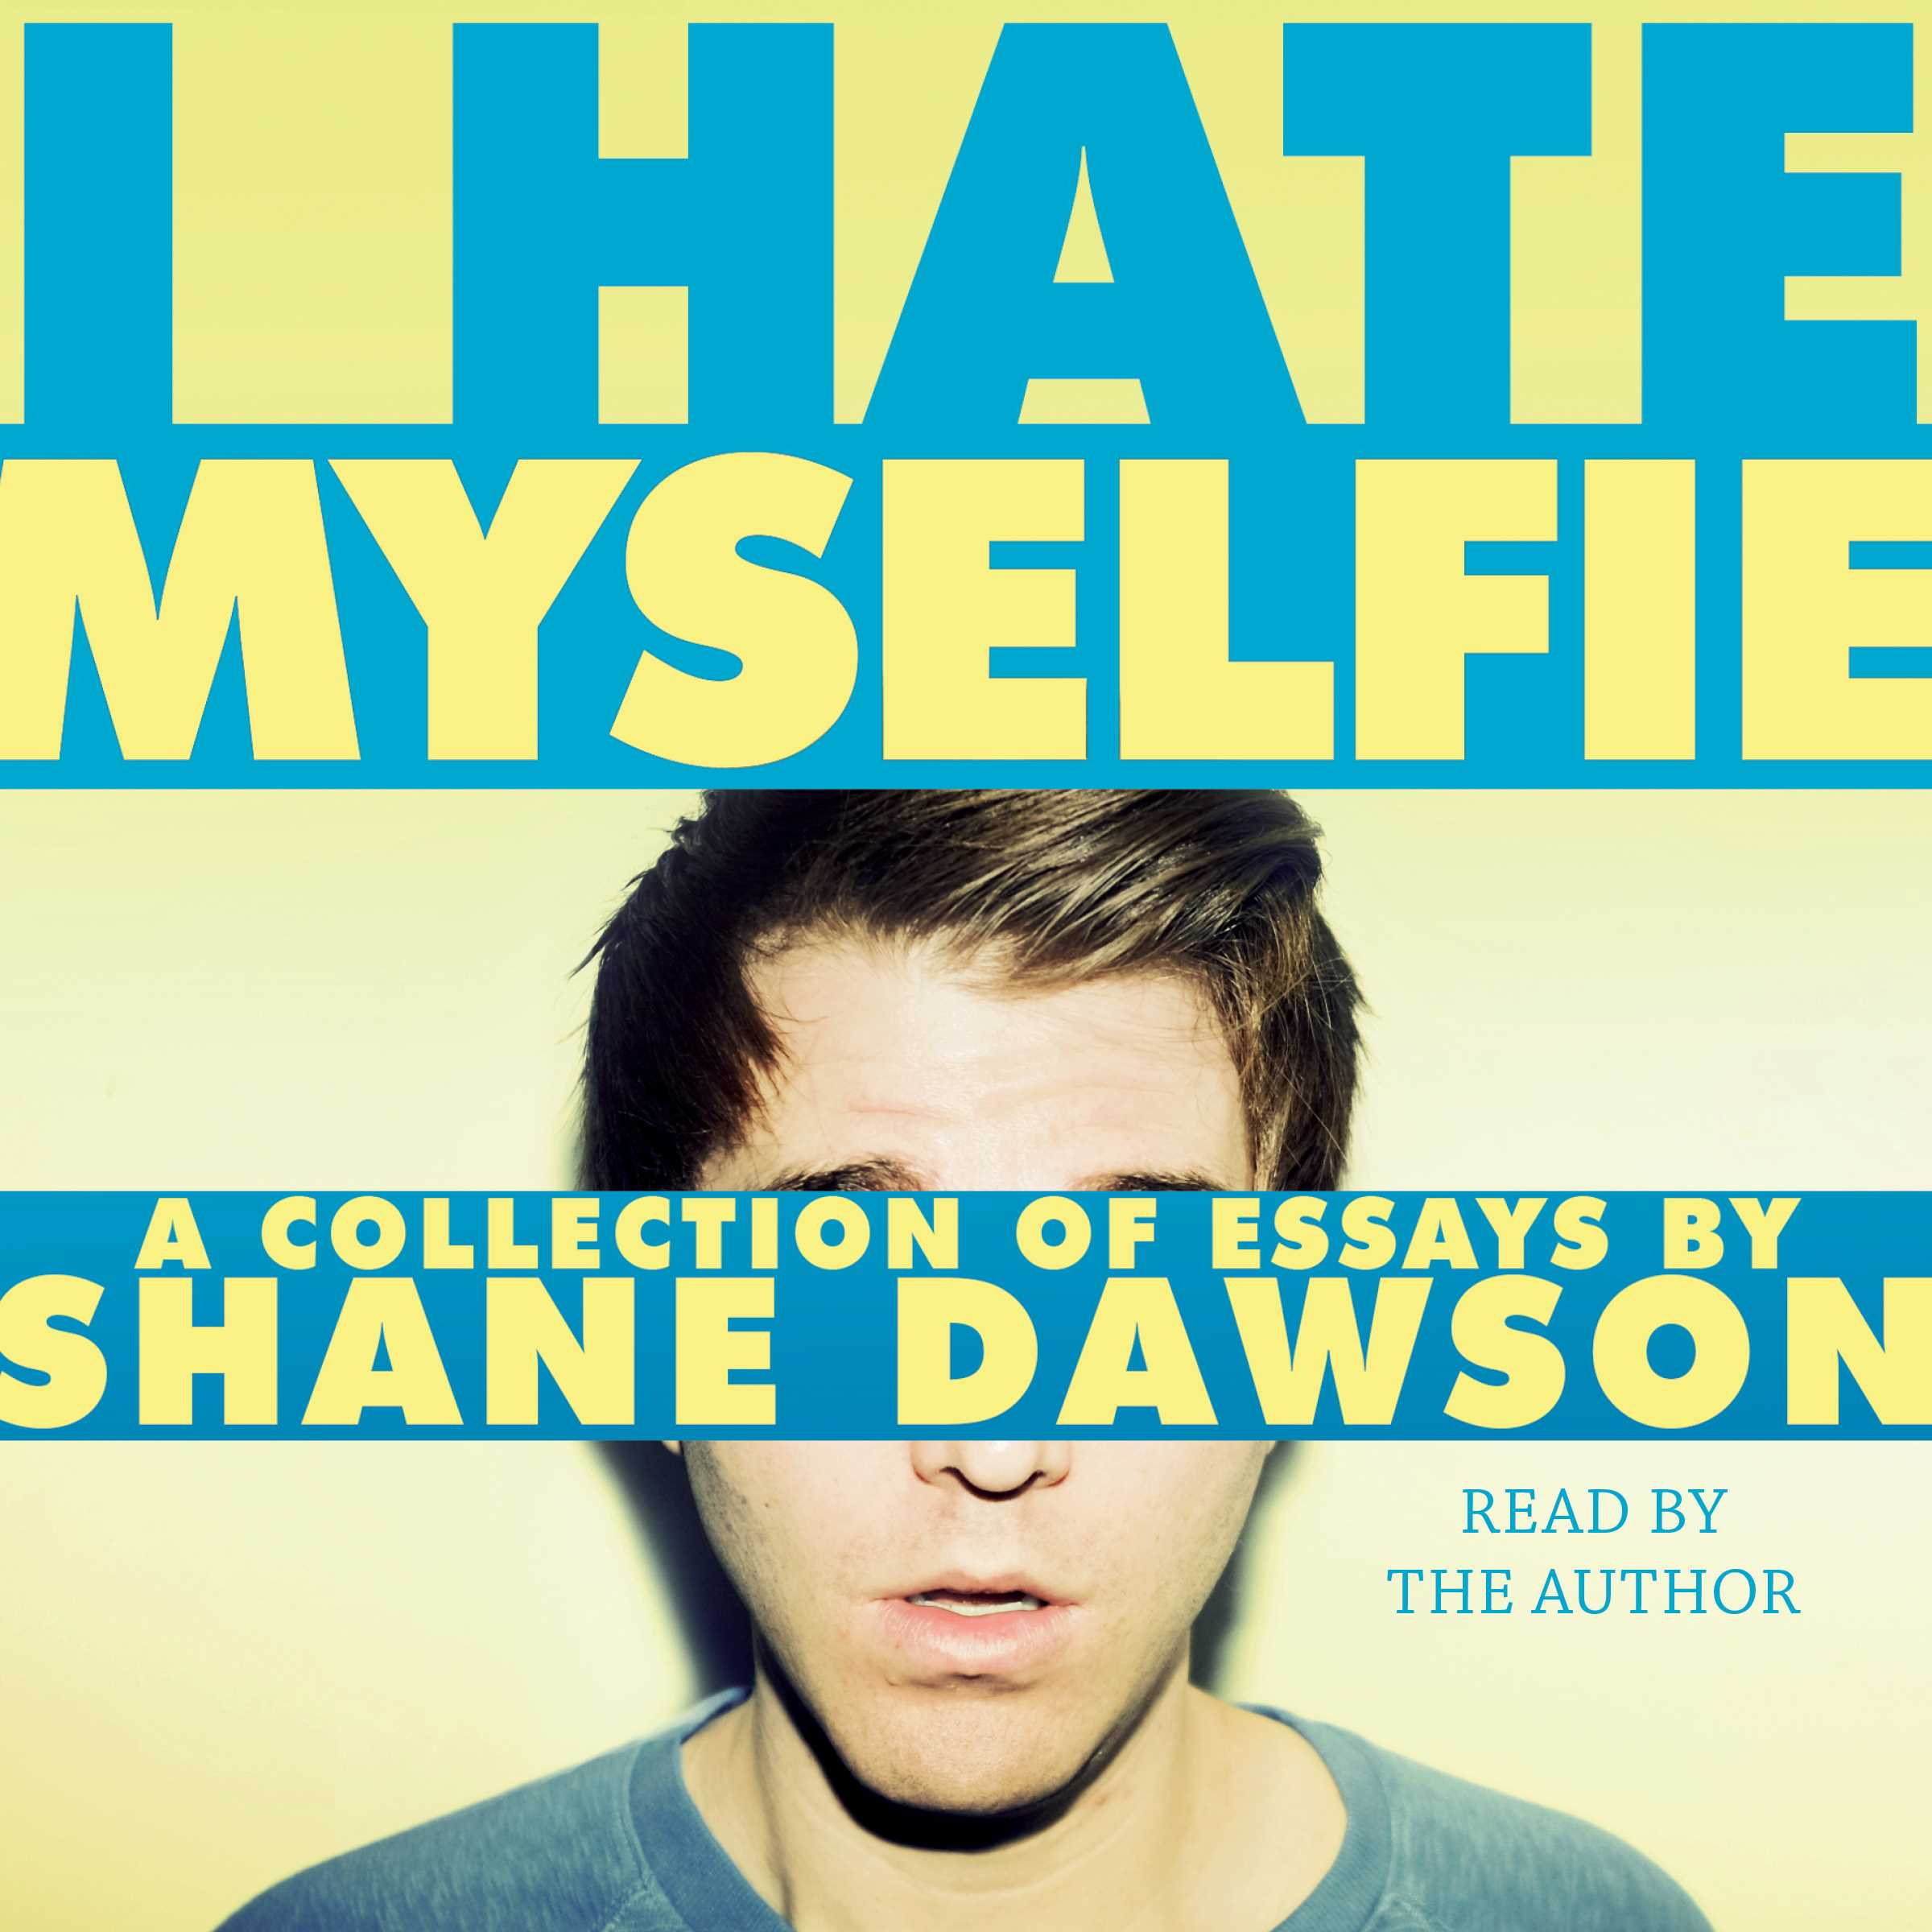 I Hate Myselfie Audiobook By Shane Dawson Official Publisher Page